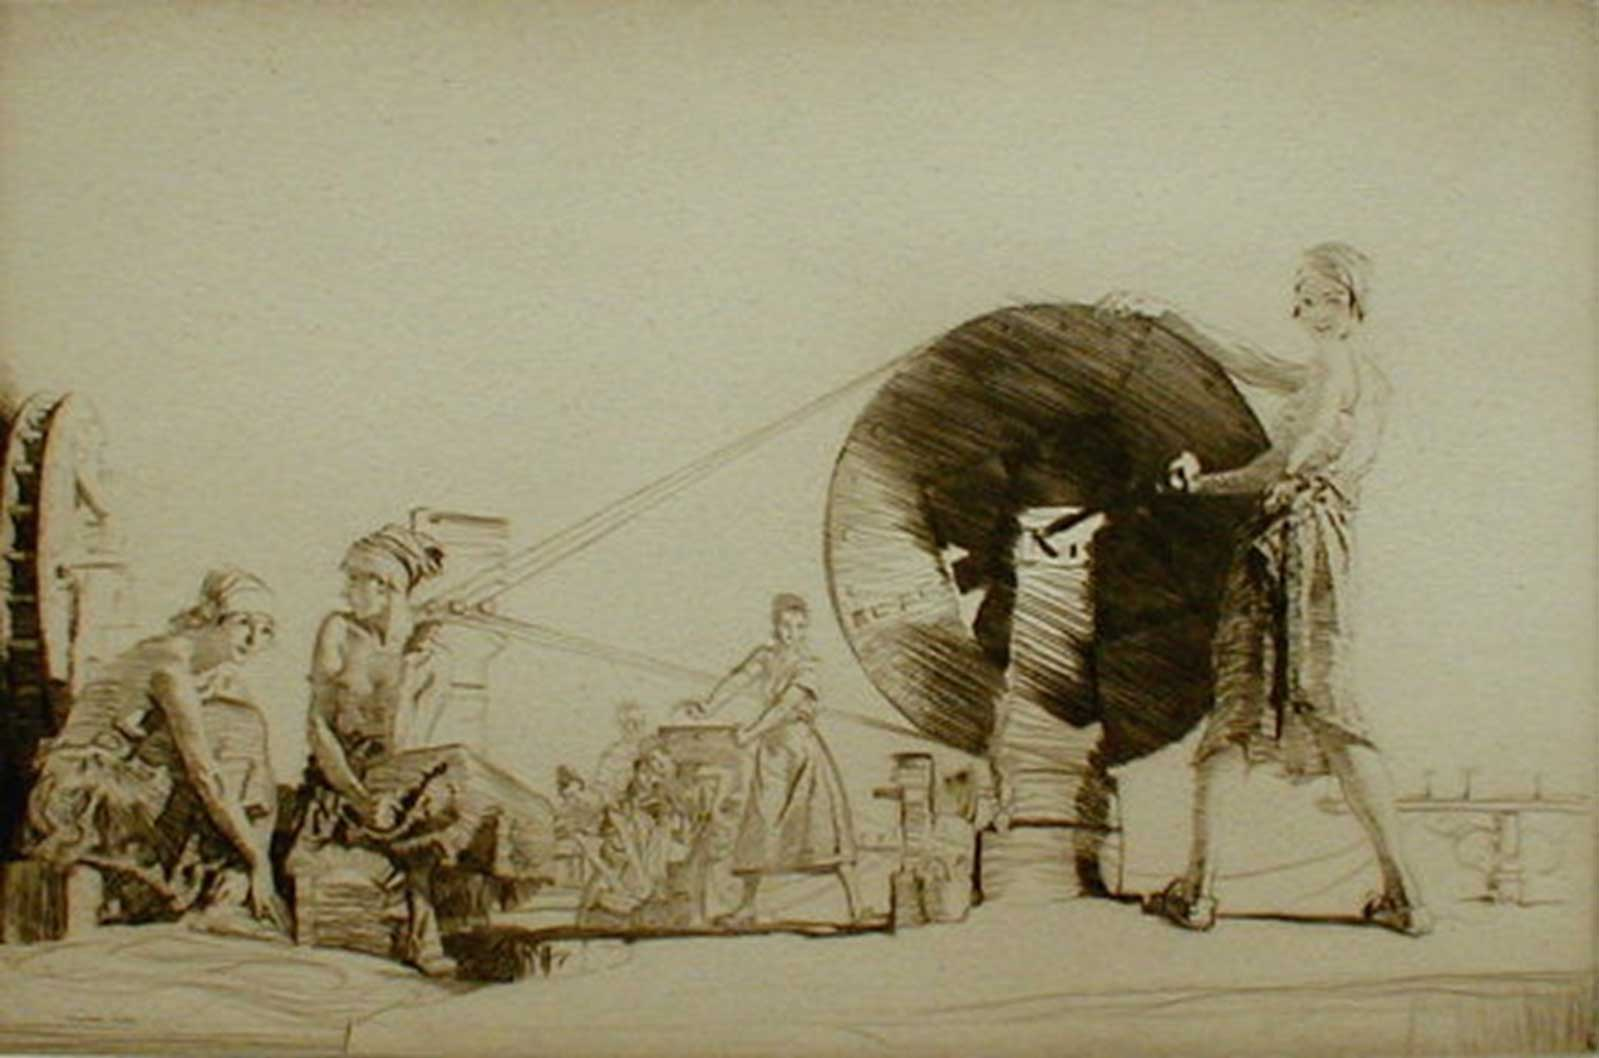 Talusman Fine Art William Russell Flint - 'Aragonese String Makers' - Drypoint Etching